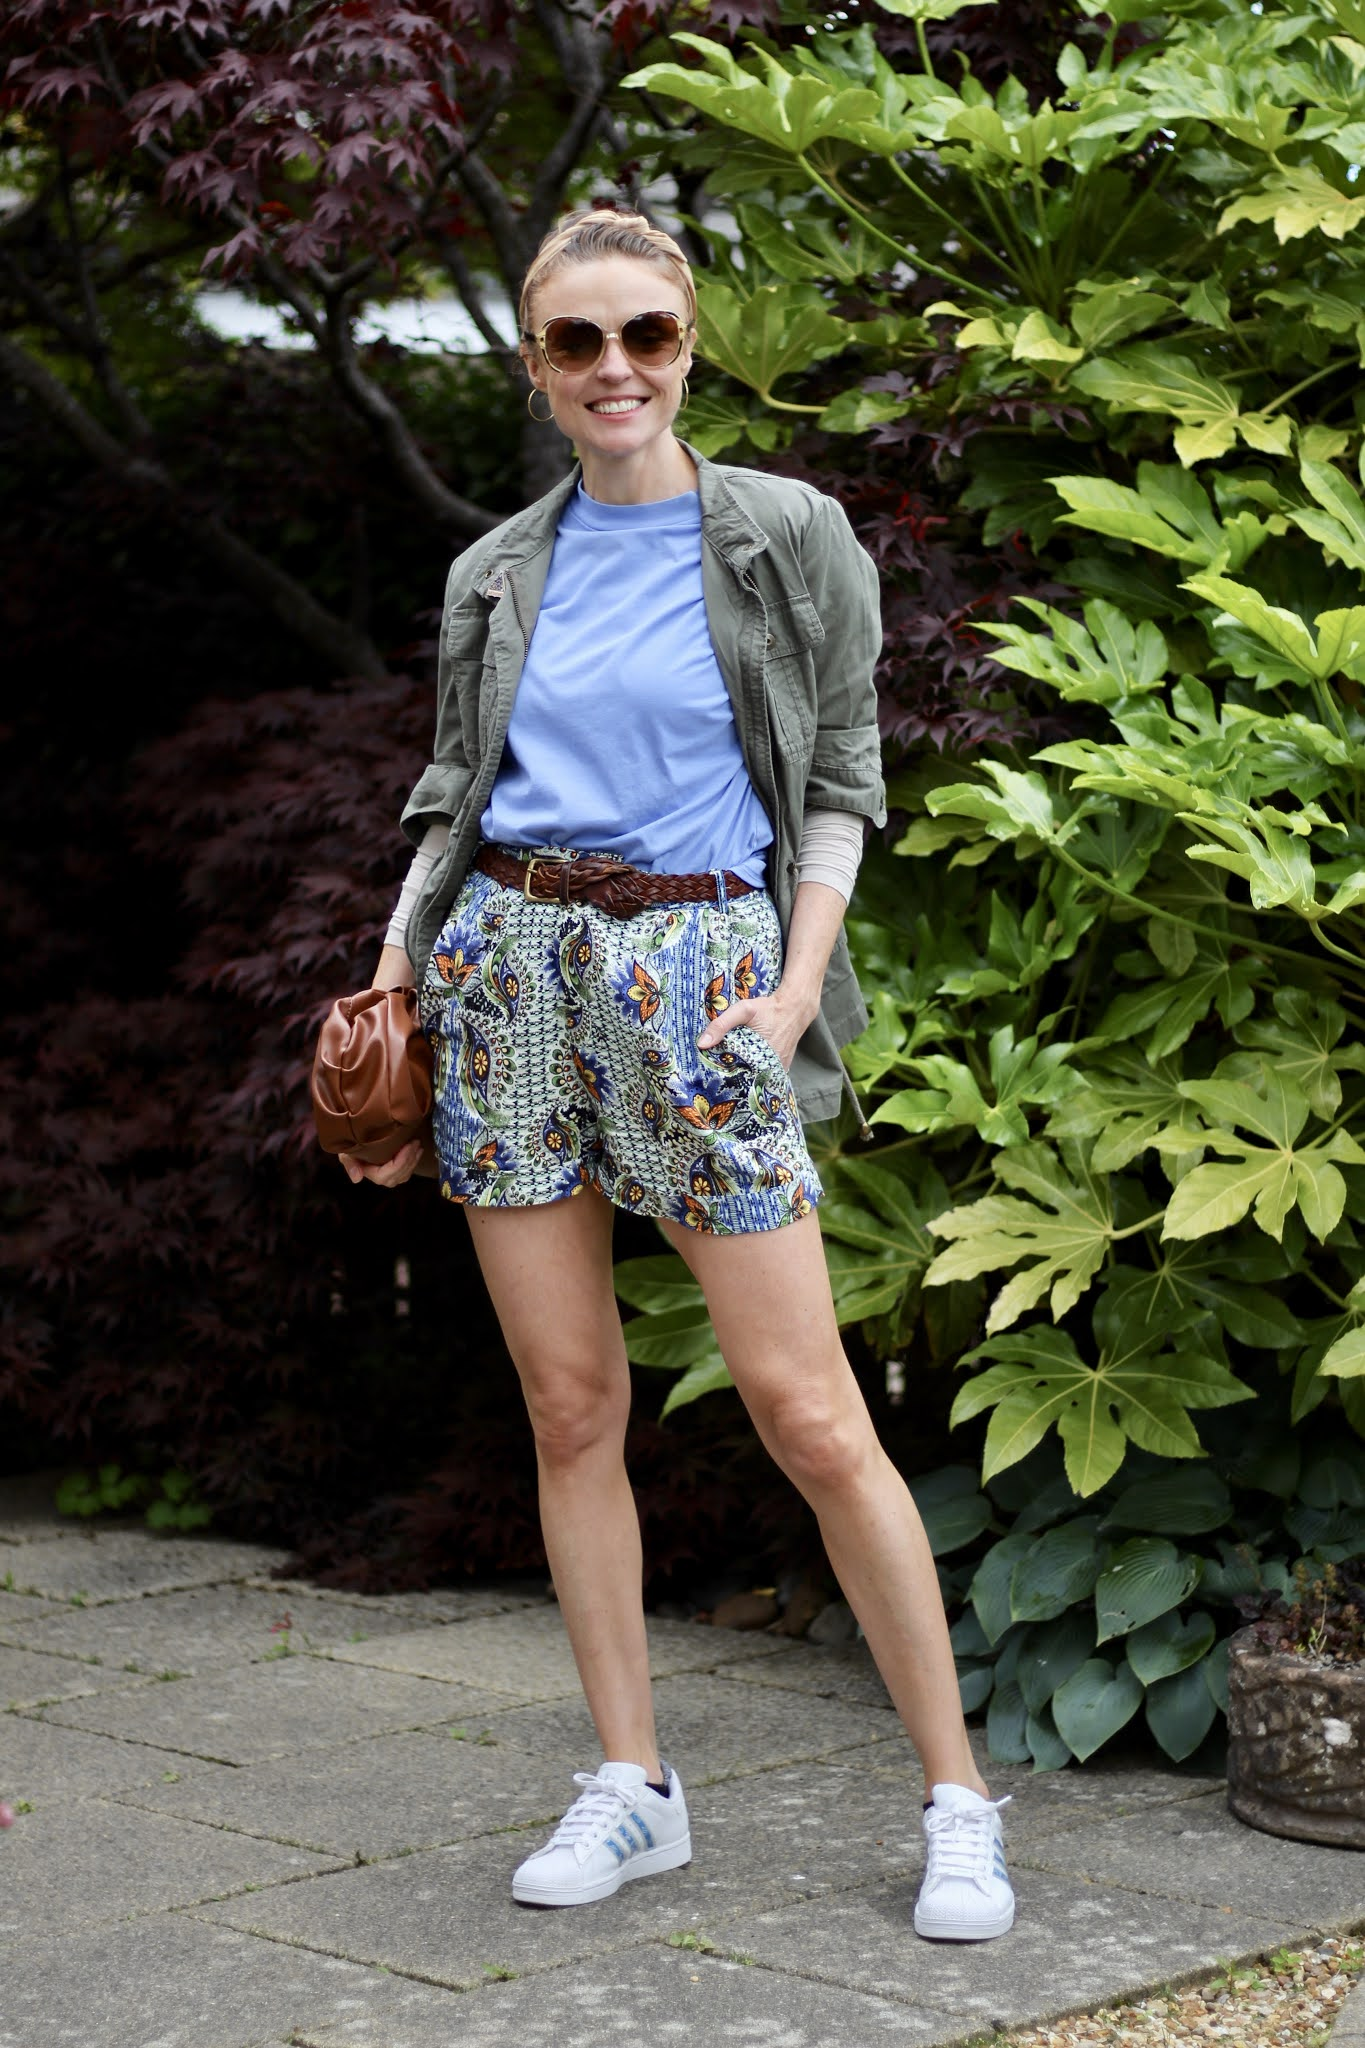 Patterned shorts and Army jacket, over 40.